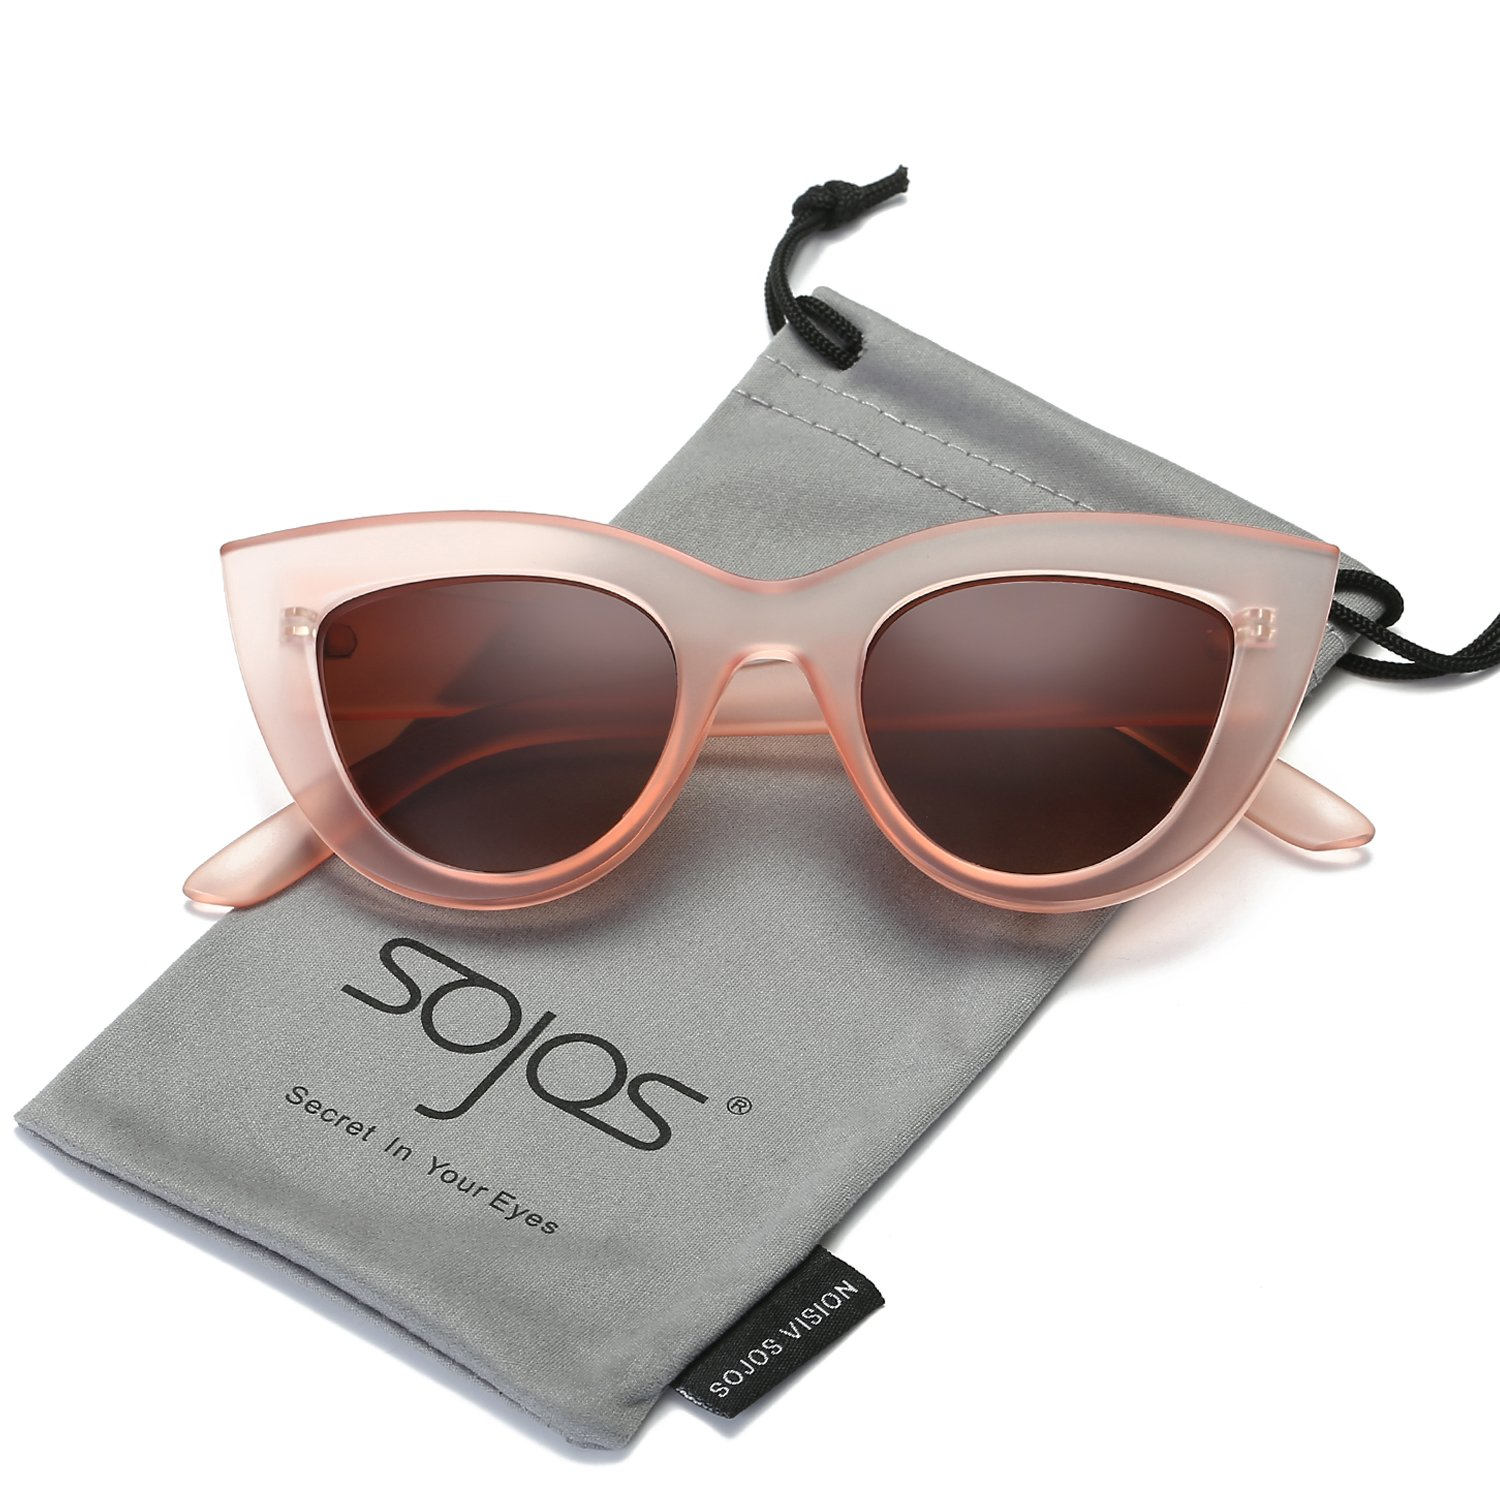 Womens sunglasses and eyewear amazon sojos retro vintage cateye sunglasses for women plastic frame mirrored lens sj2939 jeuxipadfo Gallery